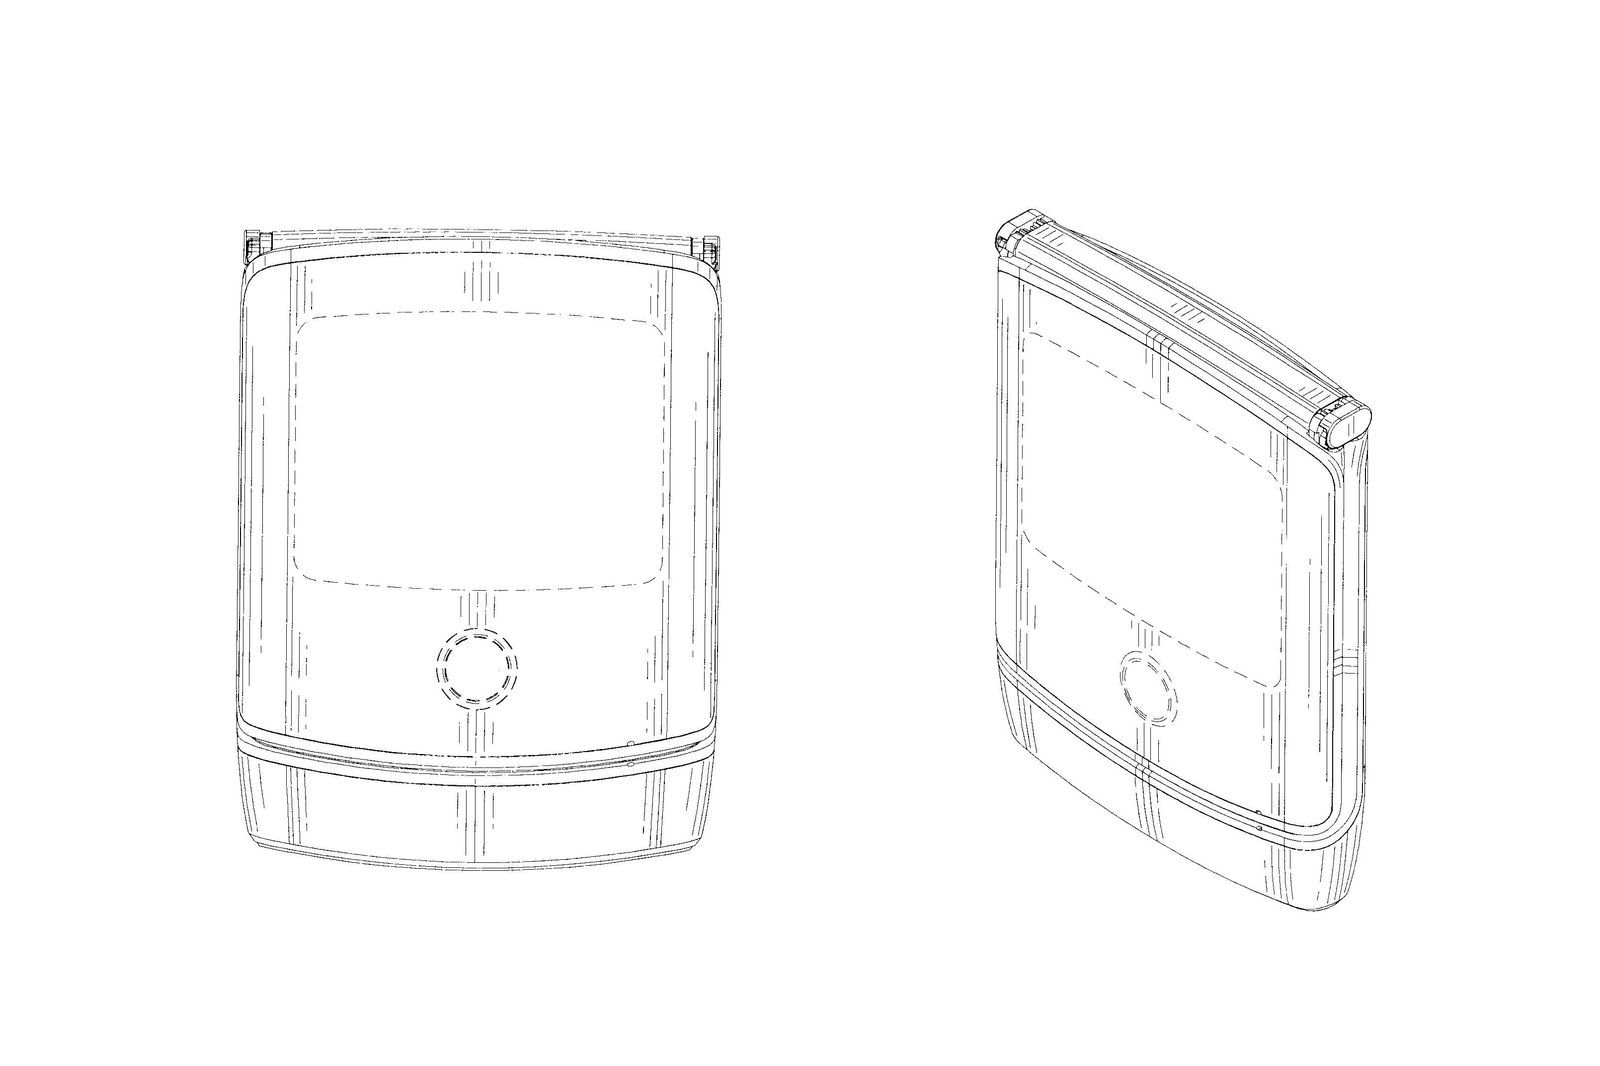 This might be the new Motorola RAZR smartphone with a